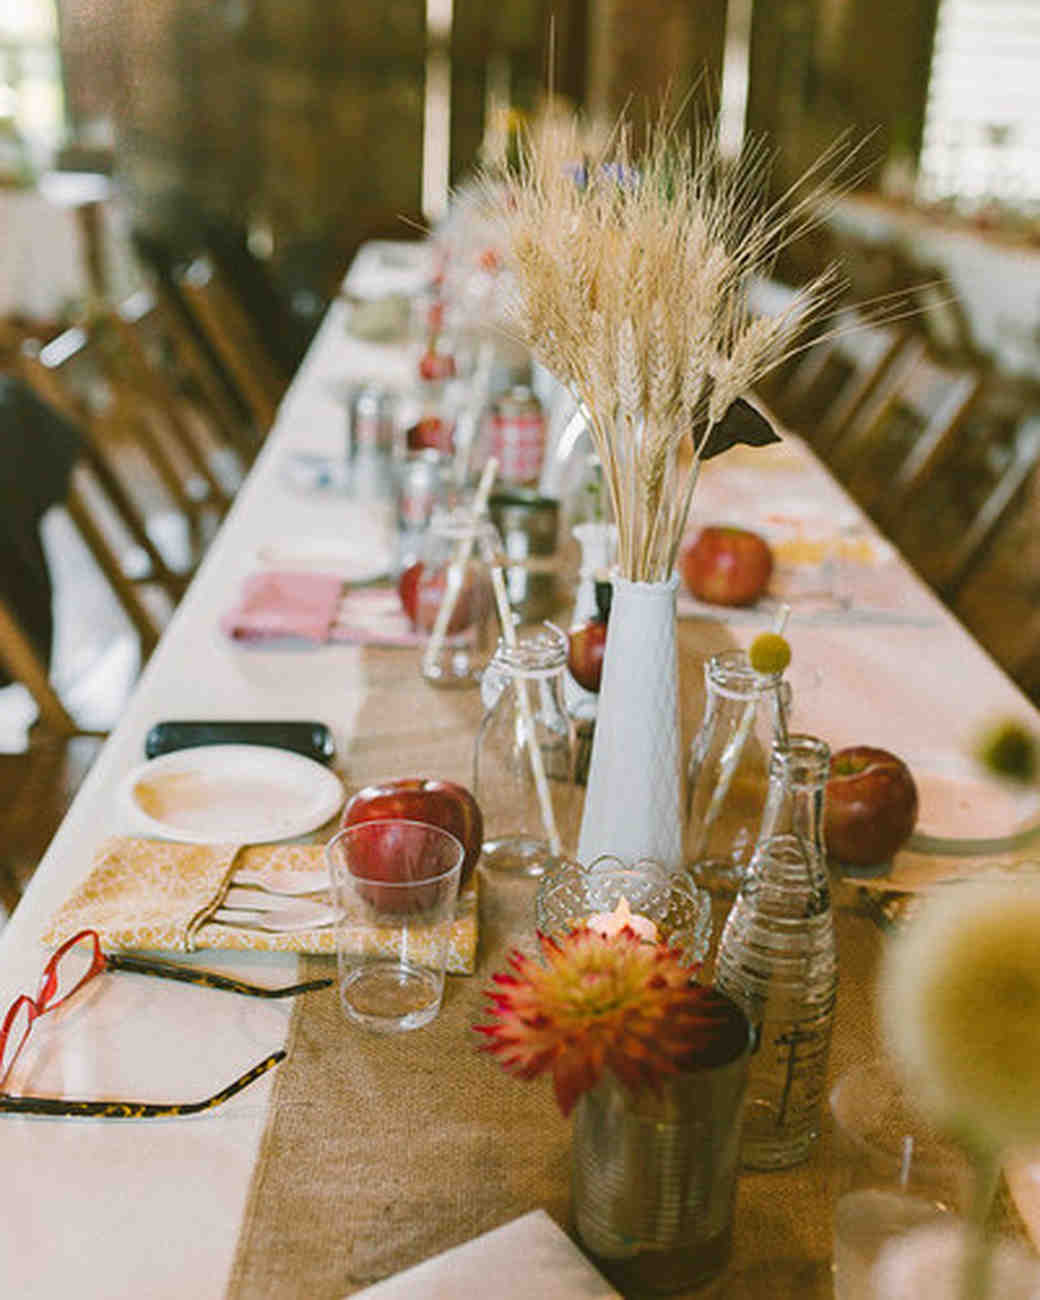 Ideas For Wedding Flower Arrangements: 28 Of The Prettiest Rustic Wedding Centerpieces